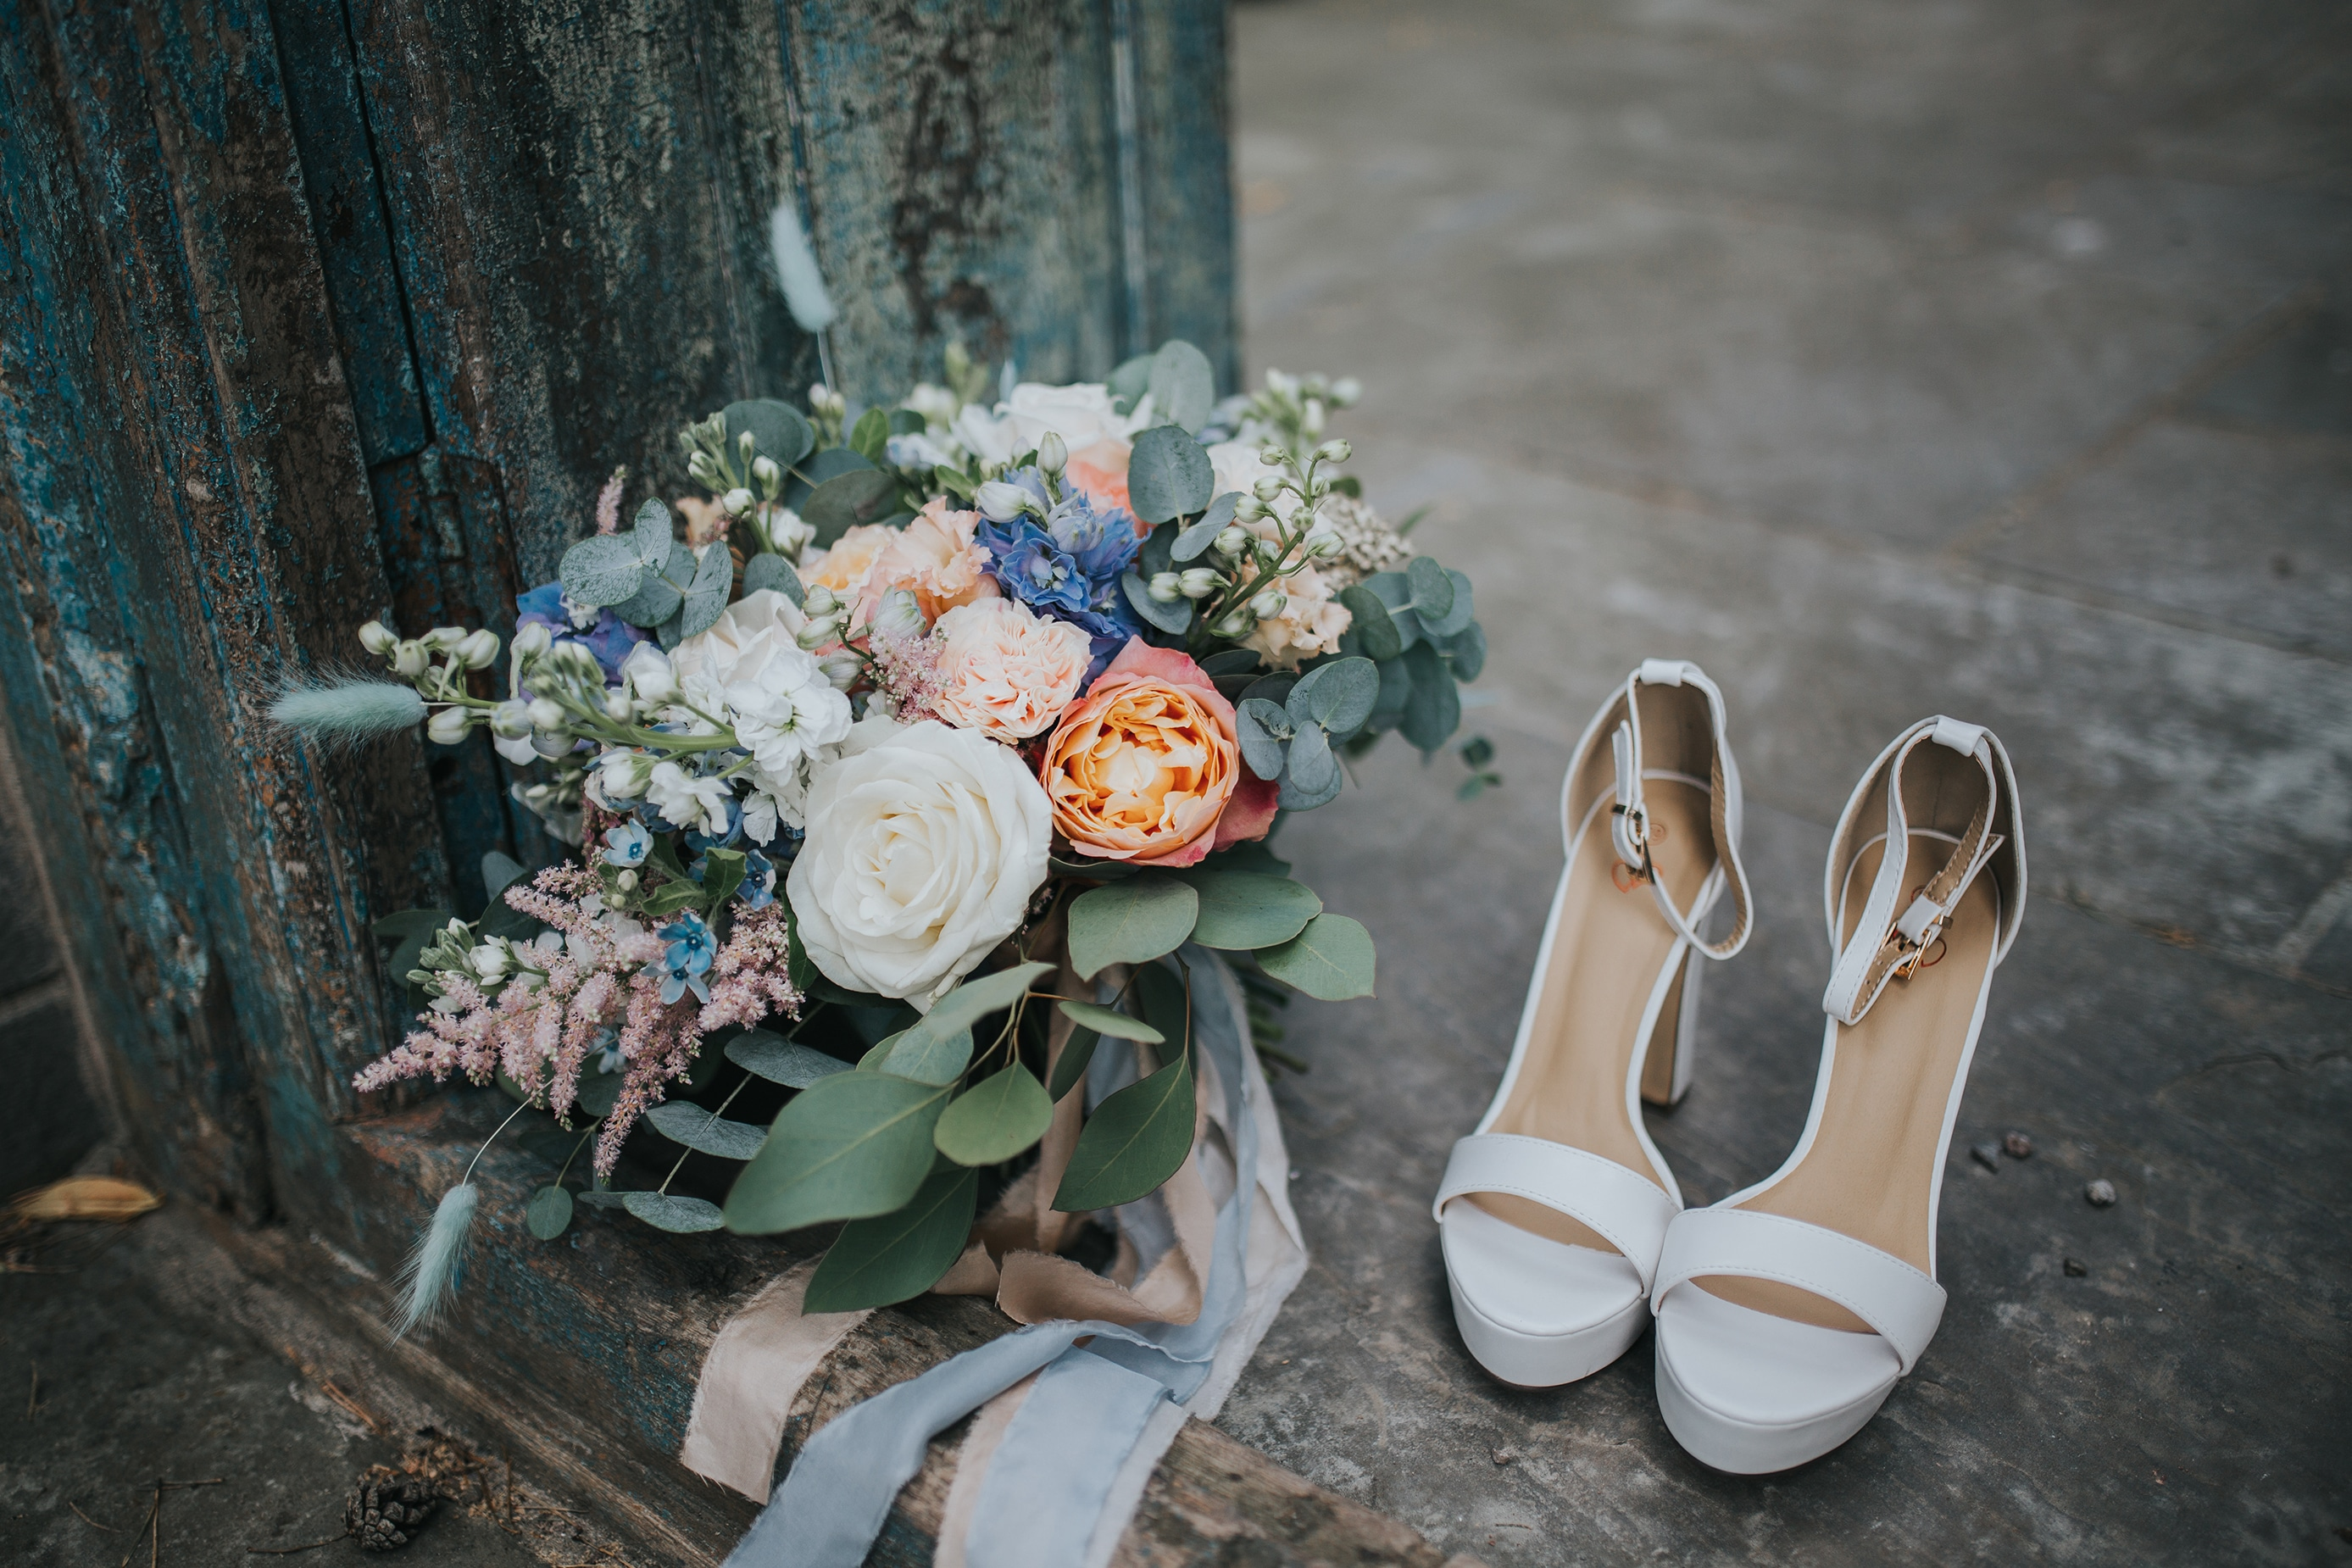 Wedding Bouquets by Issy and Bella Florals at Lemore Manor in Hereford